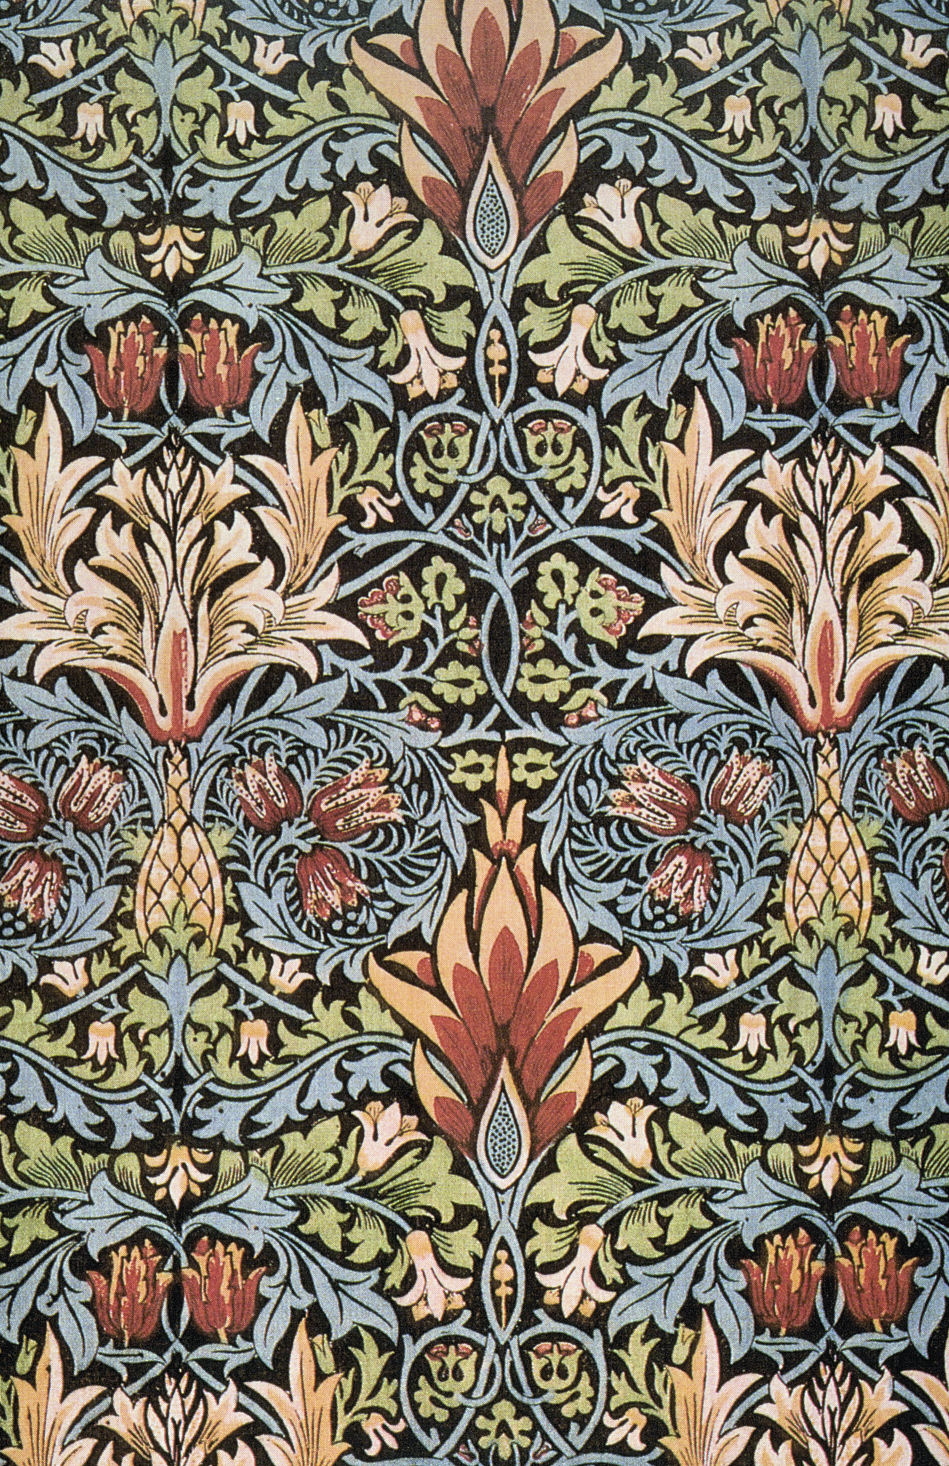 William Morris textile design (1876)